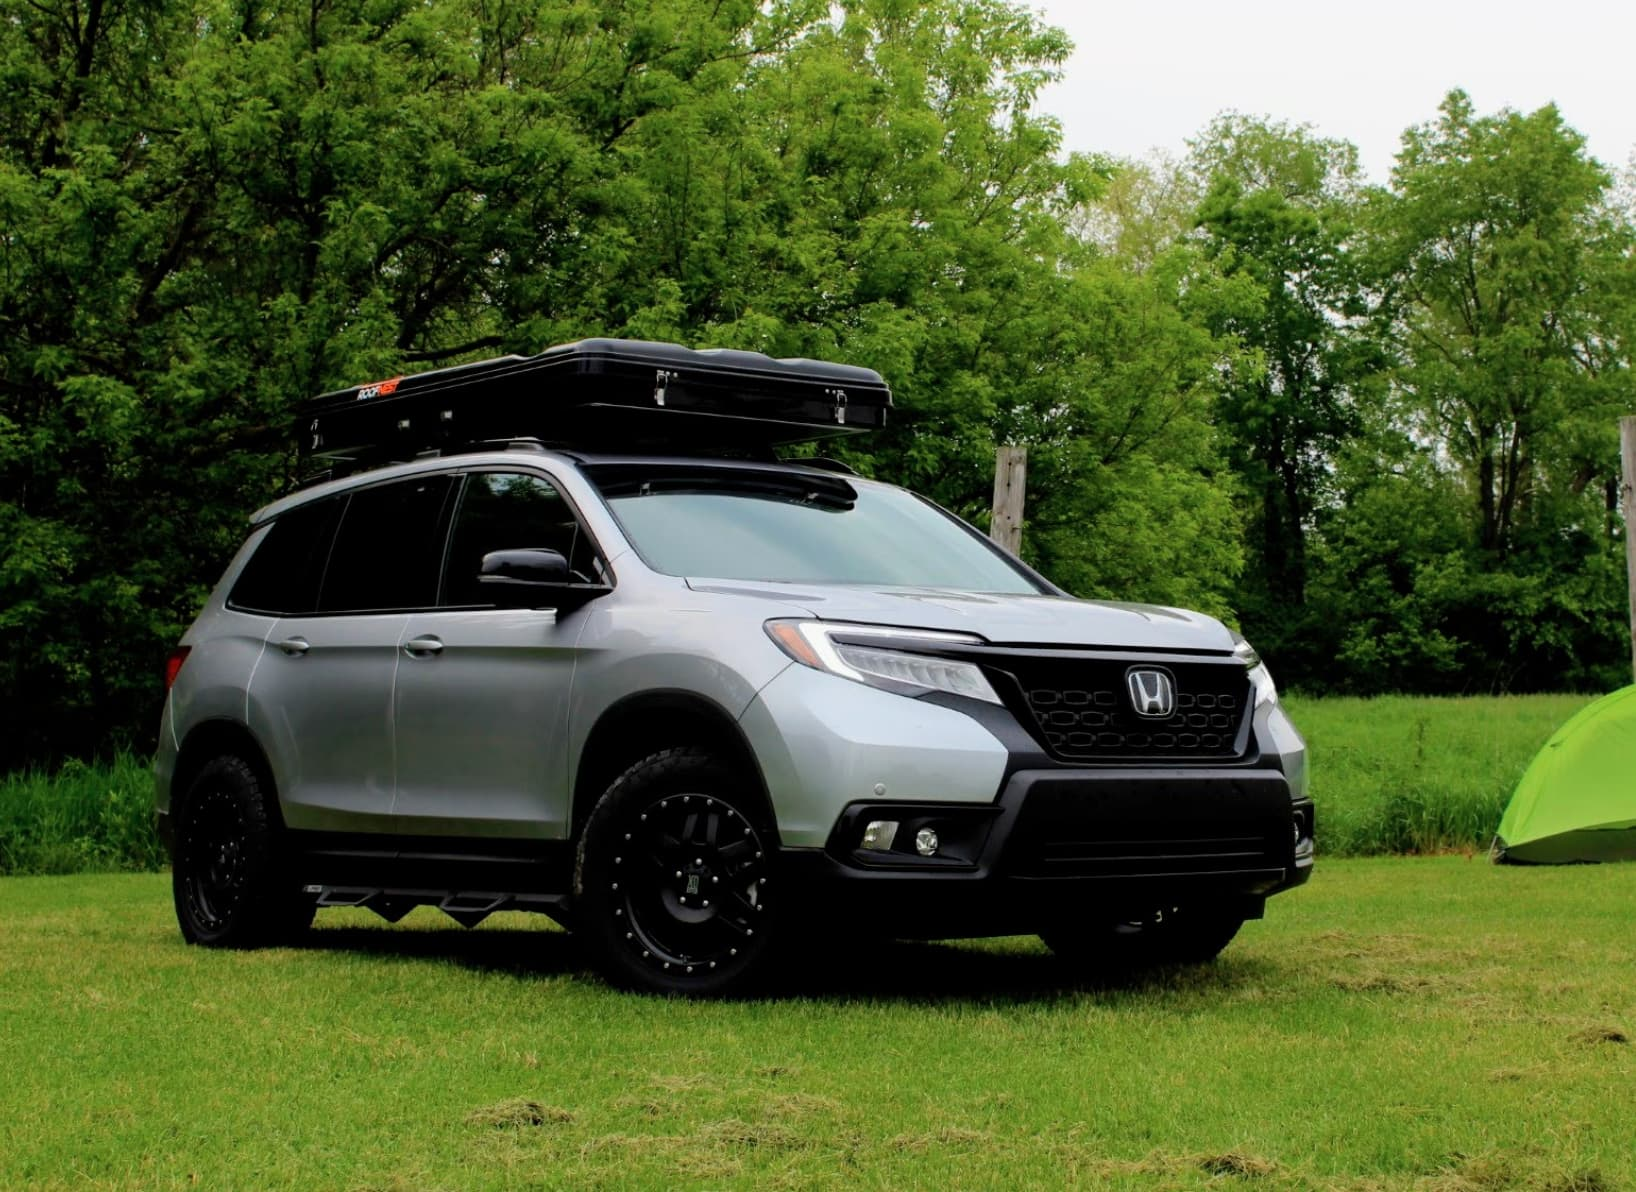 The 2019 Honda Passport is the best mid-size SUV